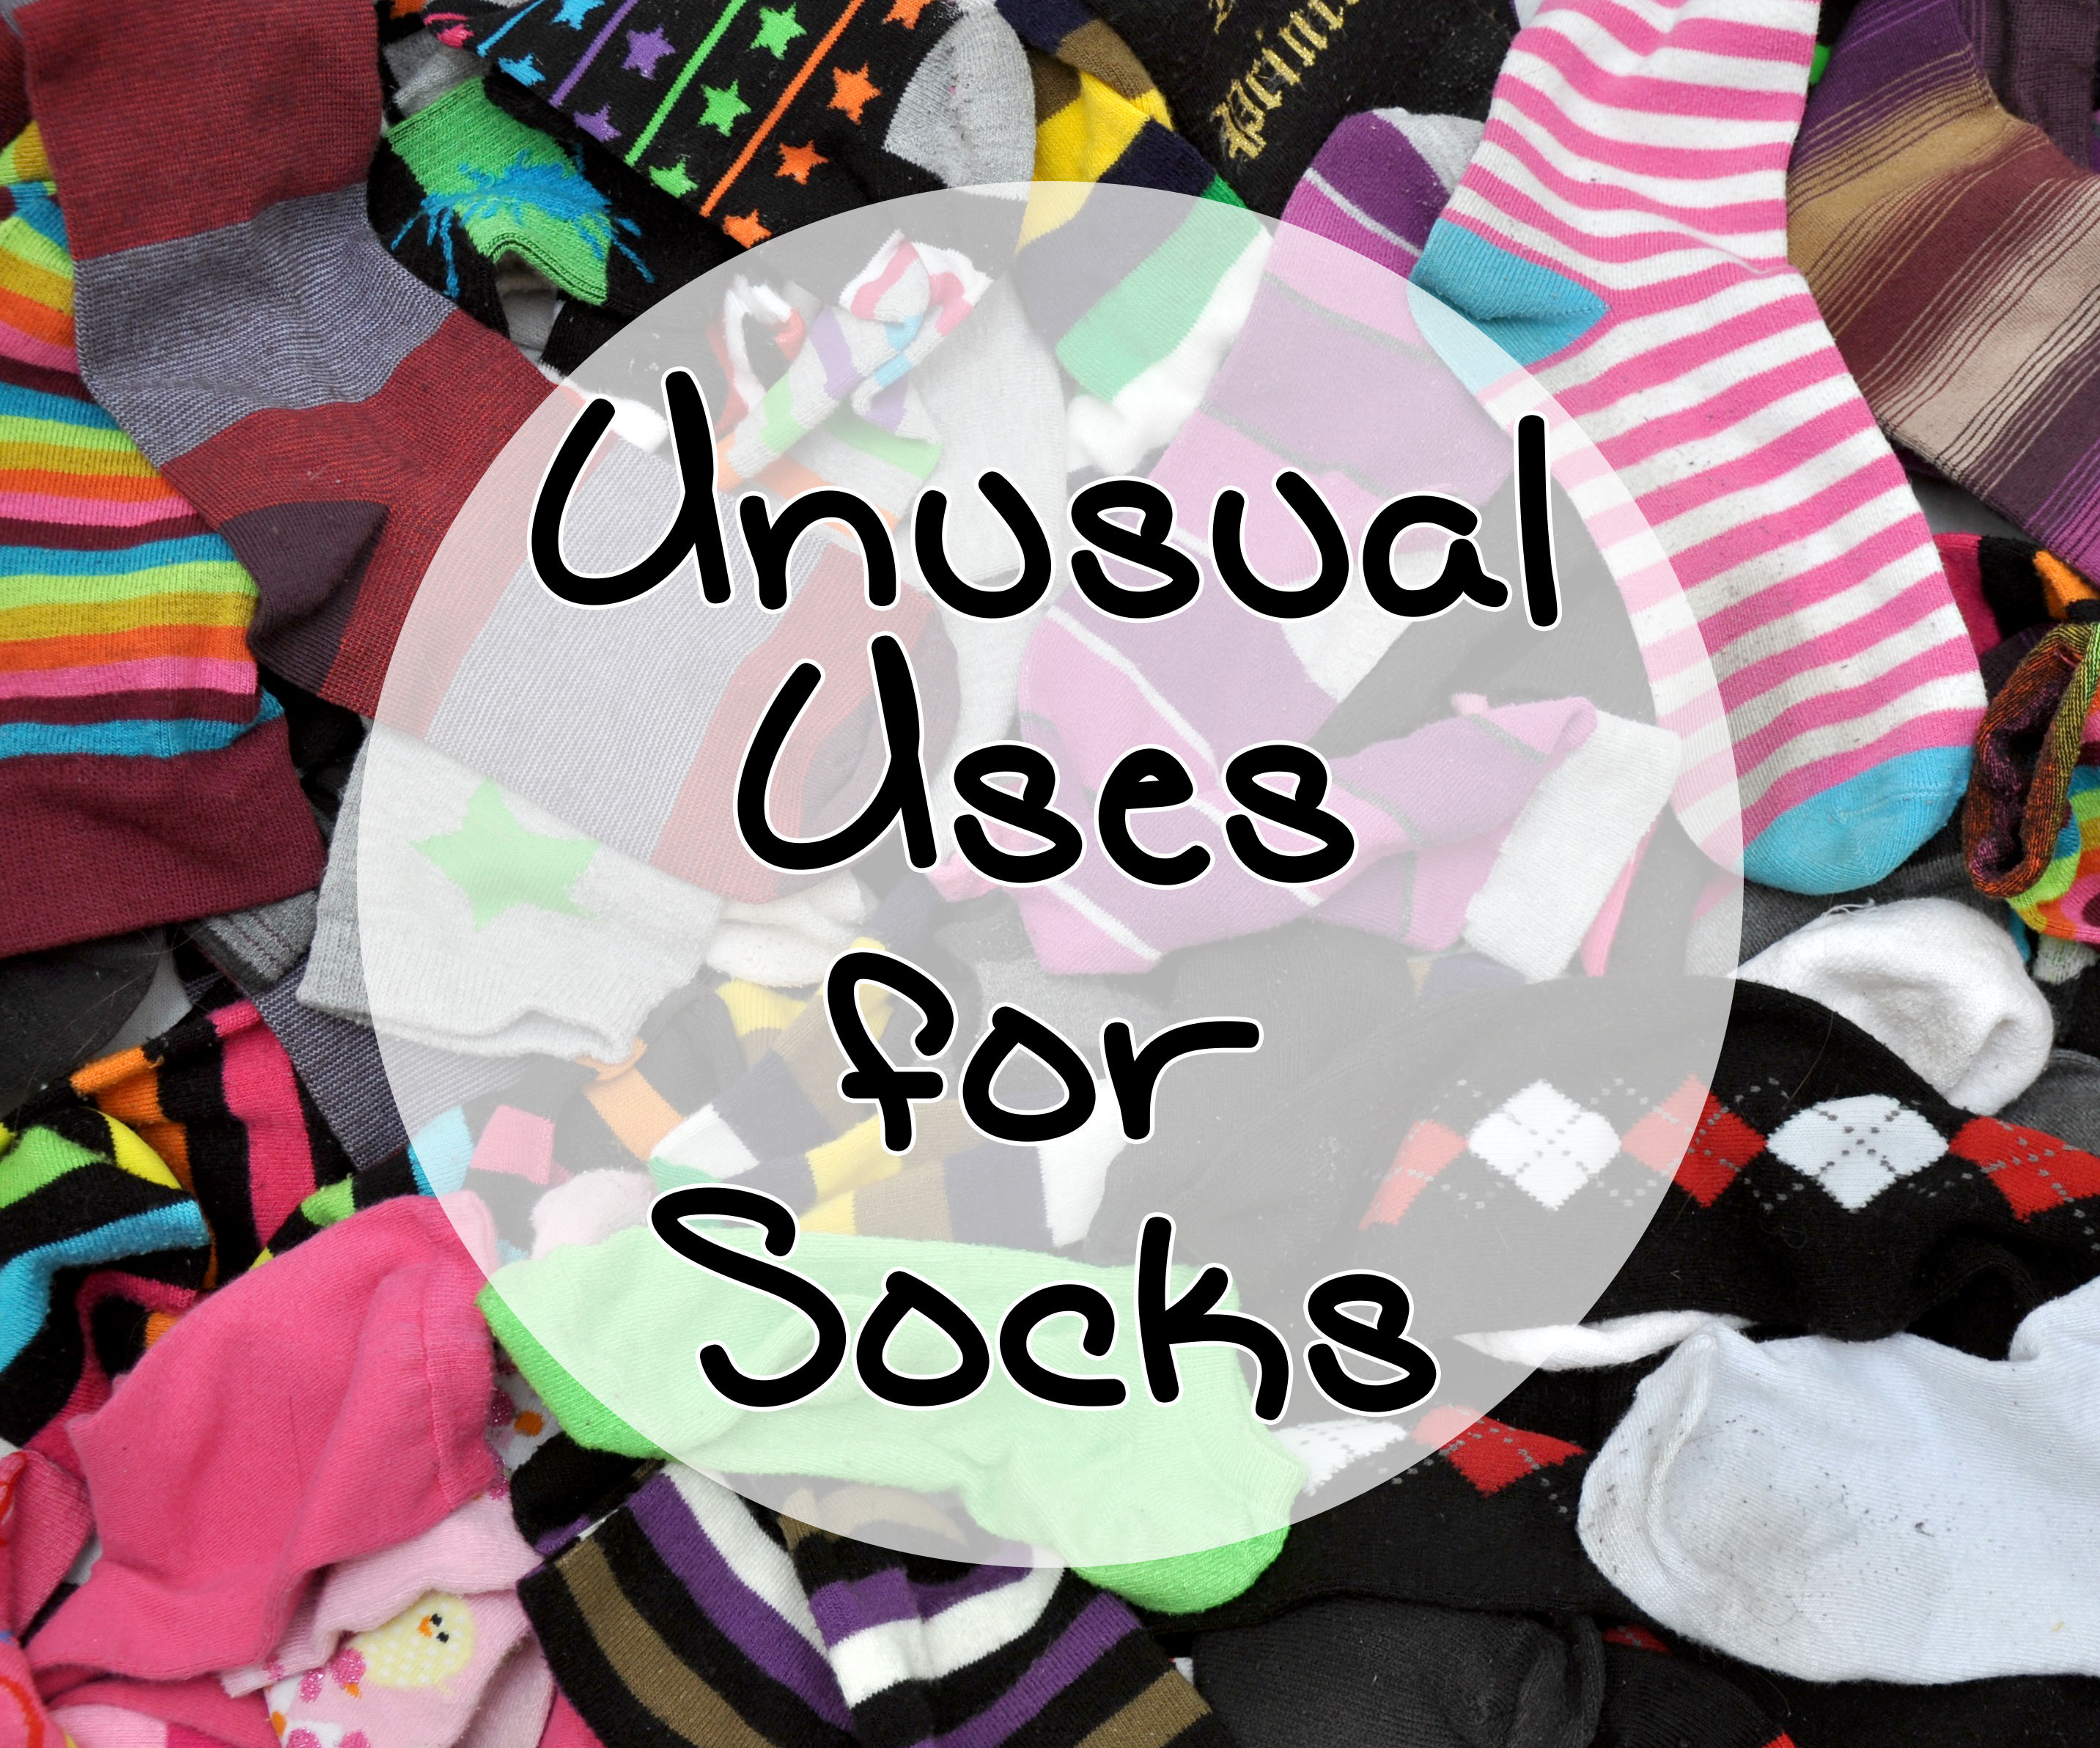 37 Unusual Uses for Lonely Socks